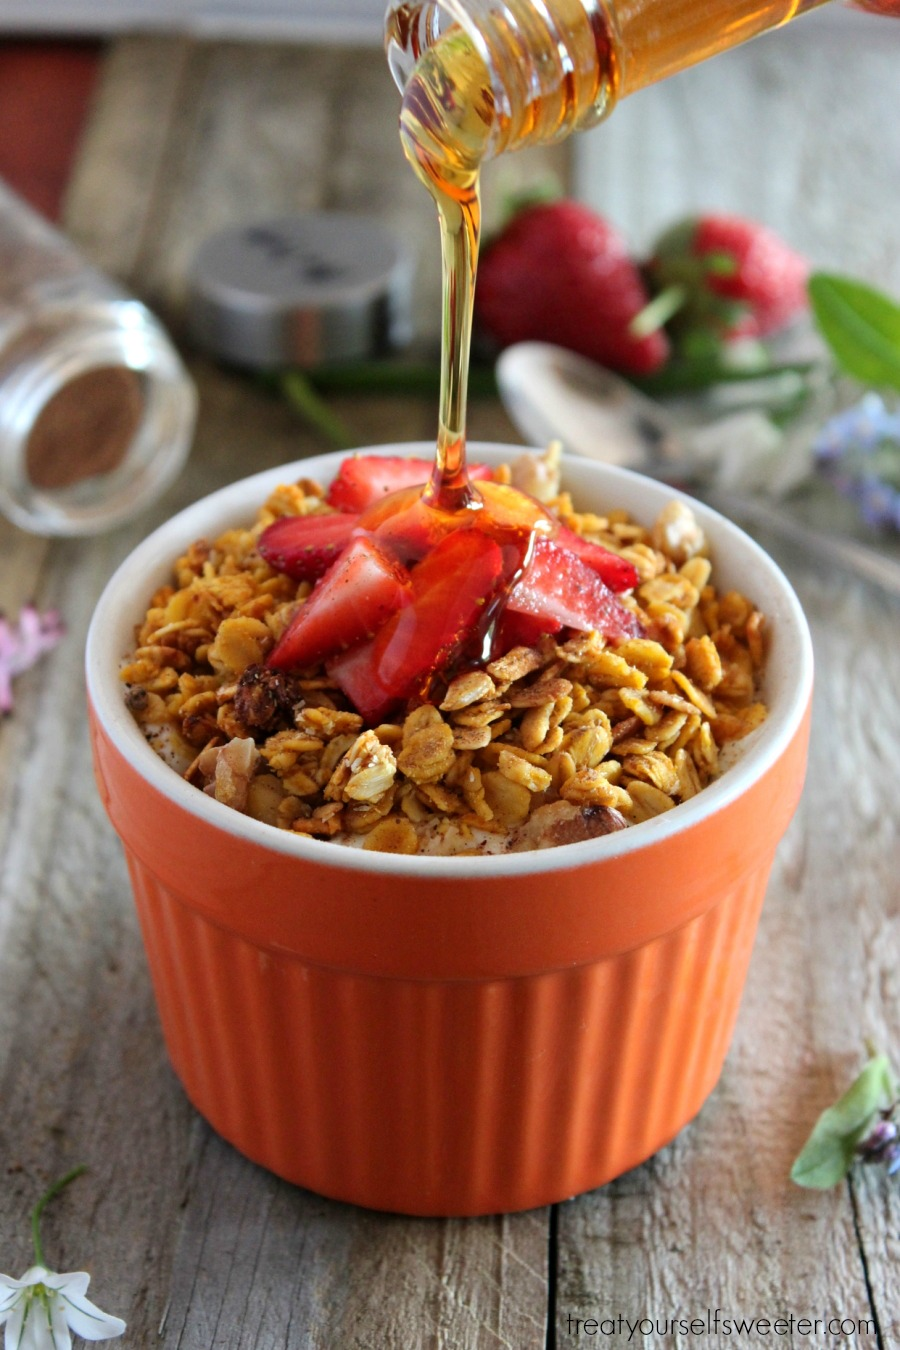 Pumpkin Spice Granola; crunchy granola with a hint of pumpkin, fall spices and sweetness of maple syrup. Perfect for brunch or a seasonal gift.